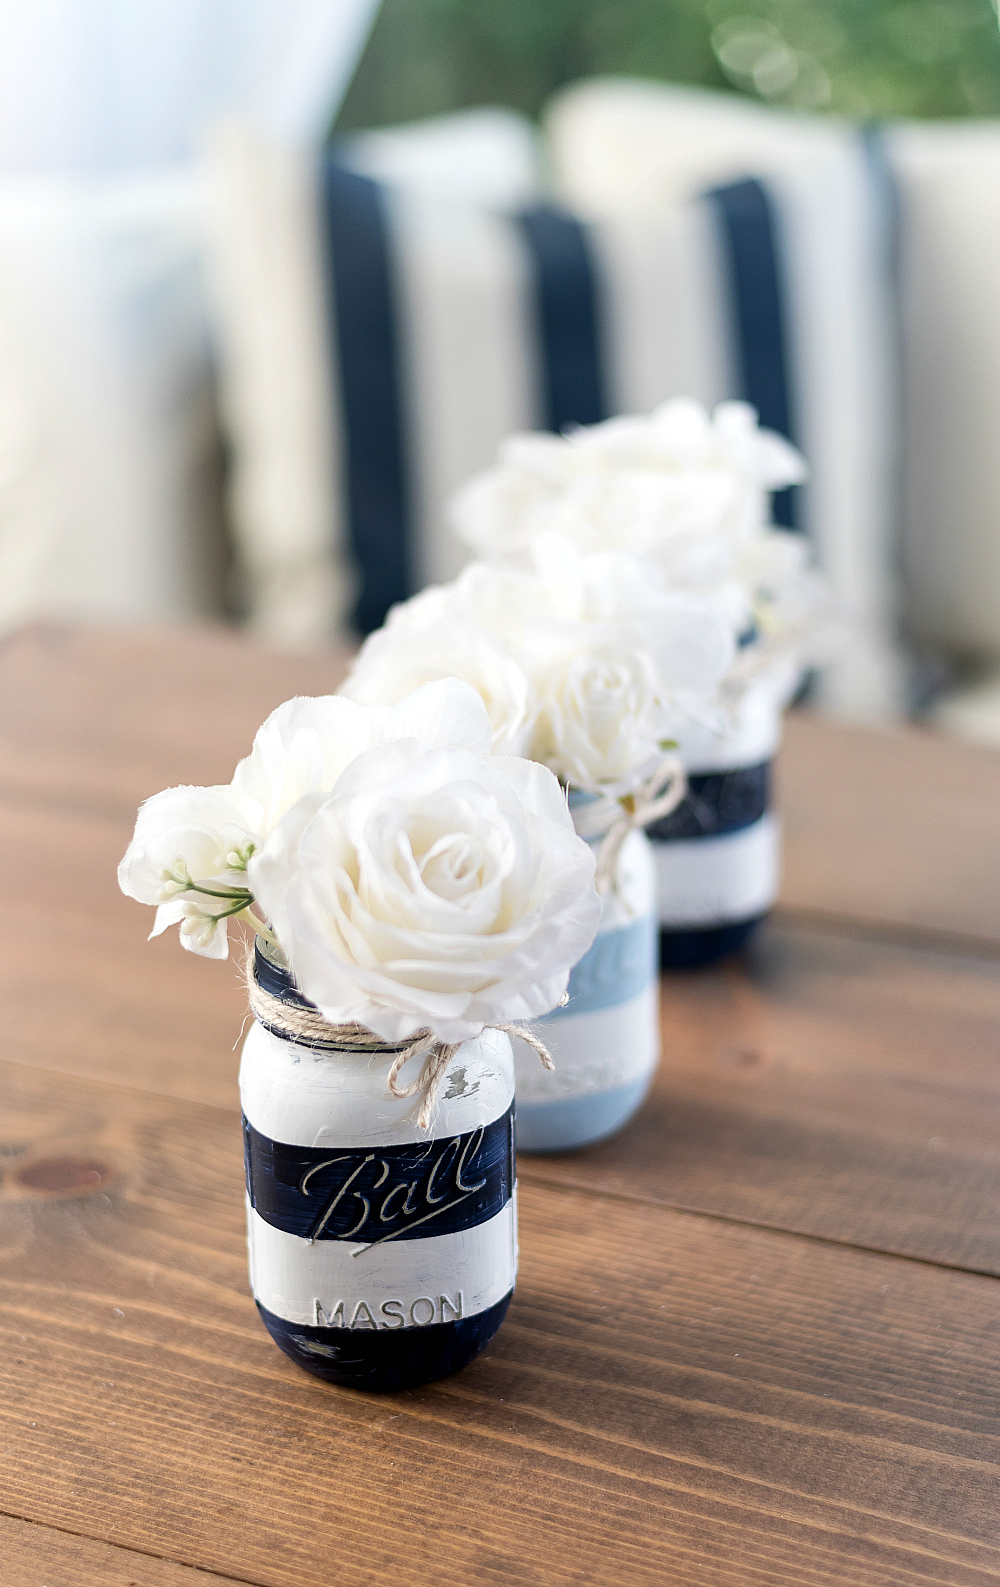 Coastal Mason Jar - Beachy Mason Jar - Painted Distressed Mason Jar @itallstartedwithpaint.com